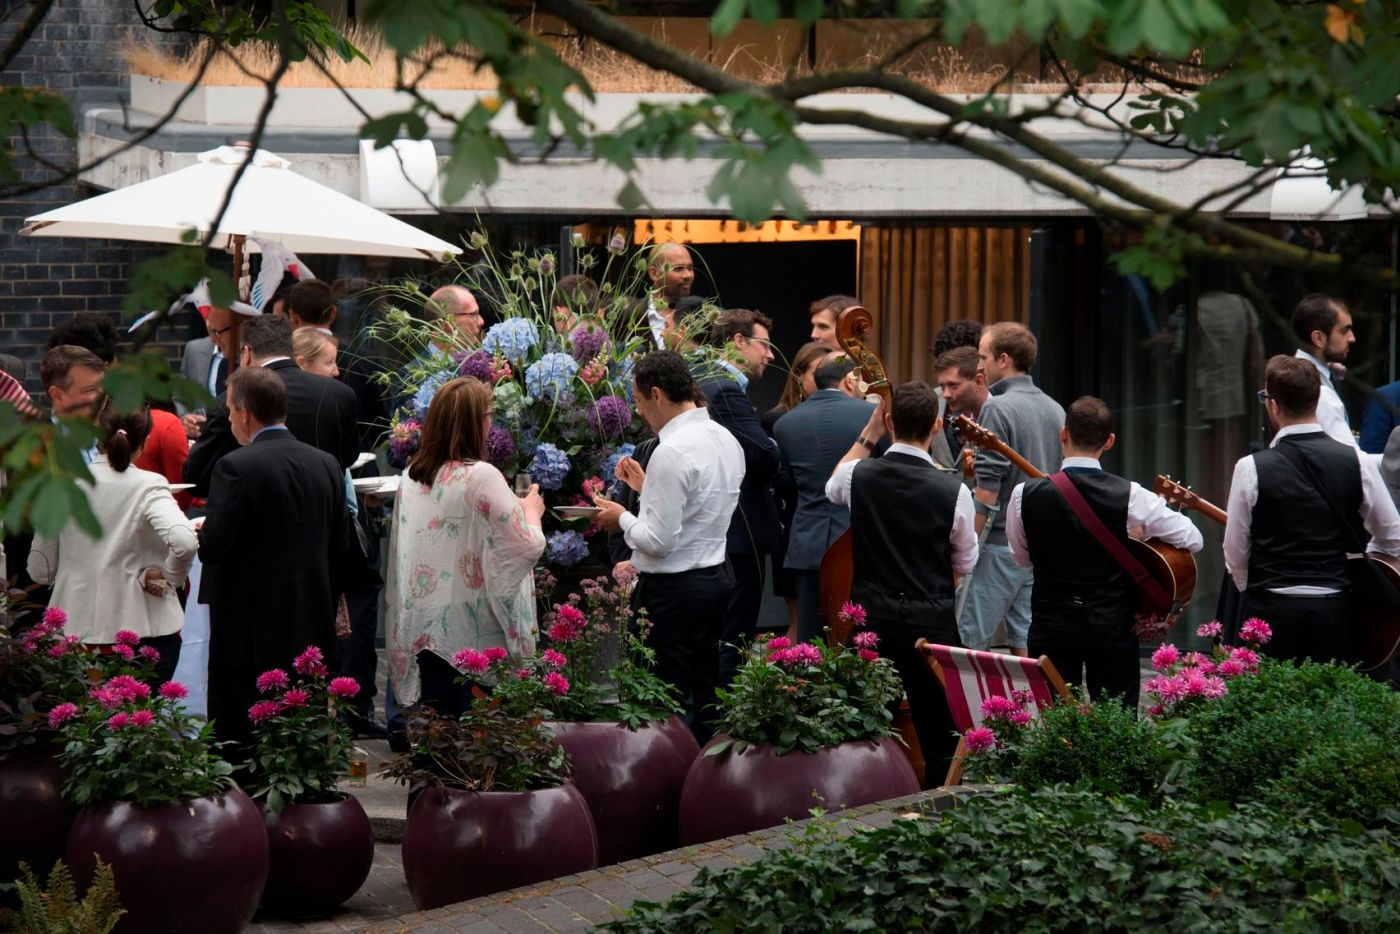 a band are playing in an outdoor terrace area with people networking around them at the museum of london